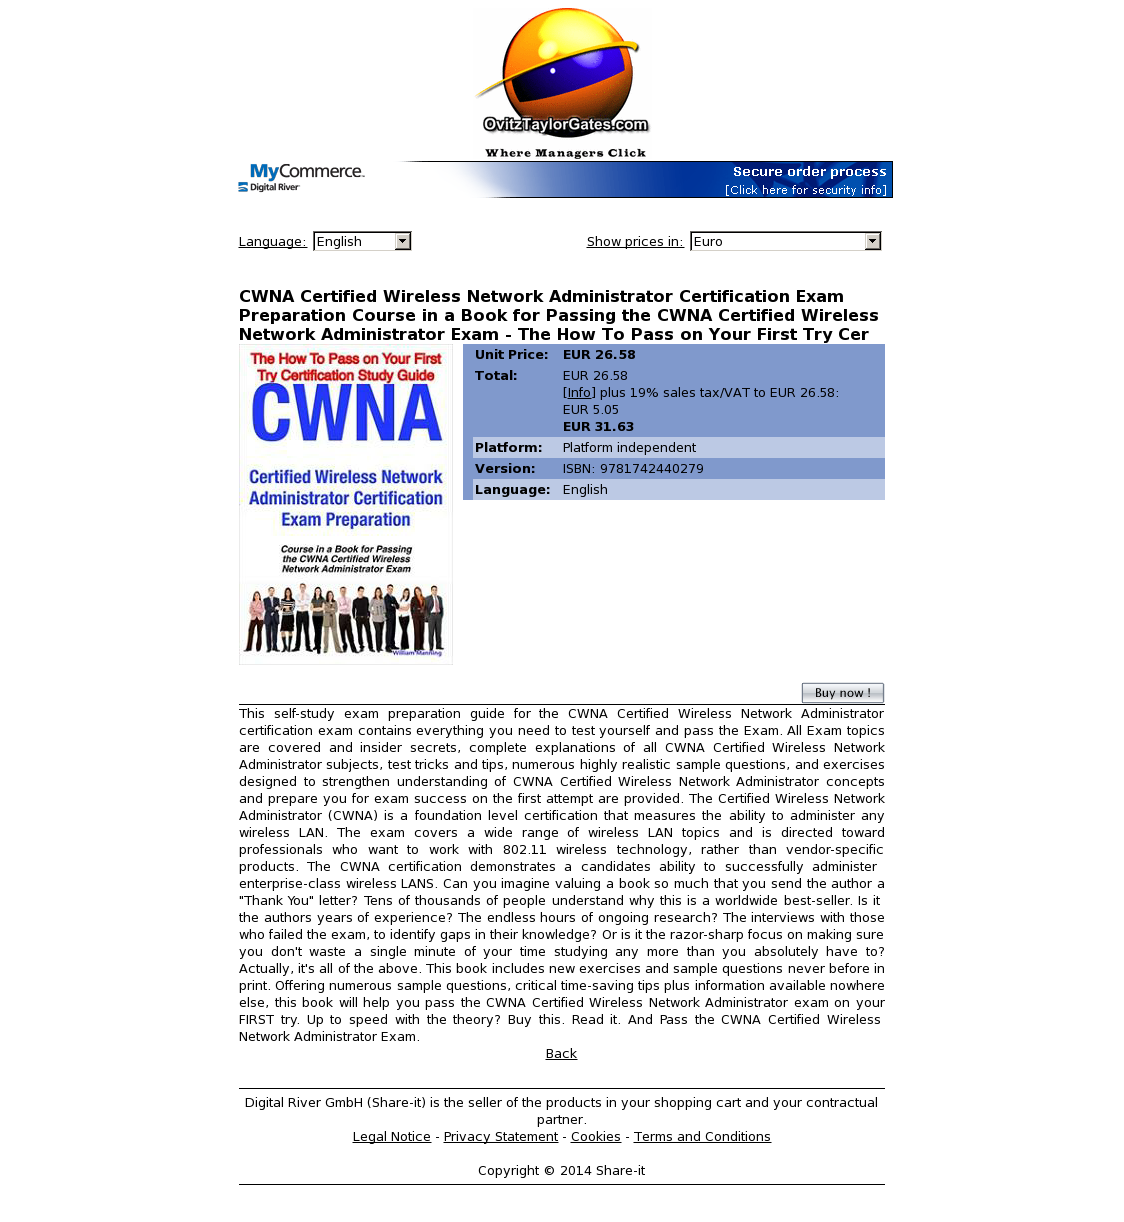 CWNA Certified Wireless Network Administrator Certification Exam Preparation Course in a Book for Passing the CWNA Certified Wireless Network Administrator Exam - The How To Pass on Your First Try Cer